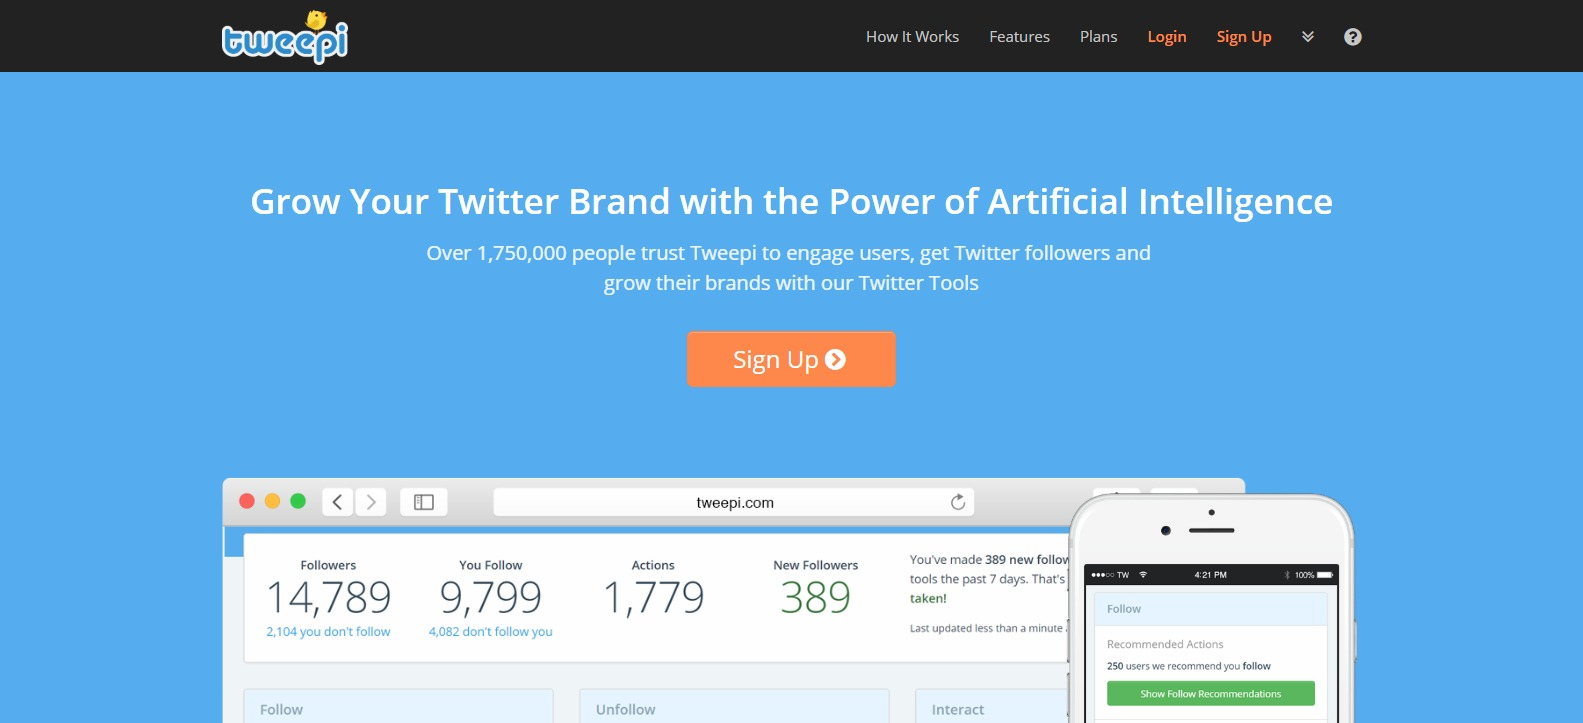 Tweepi - Get More Twitter Followers